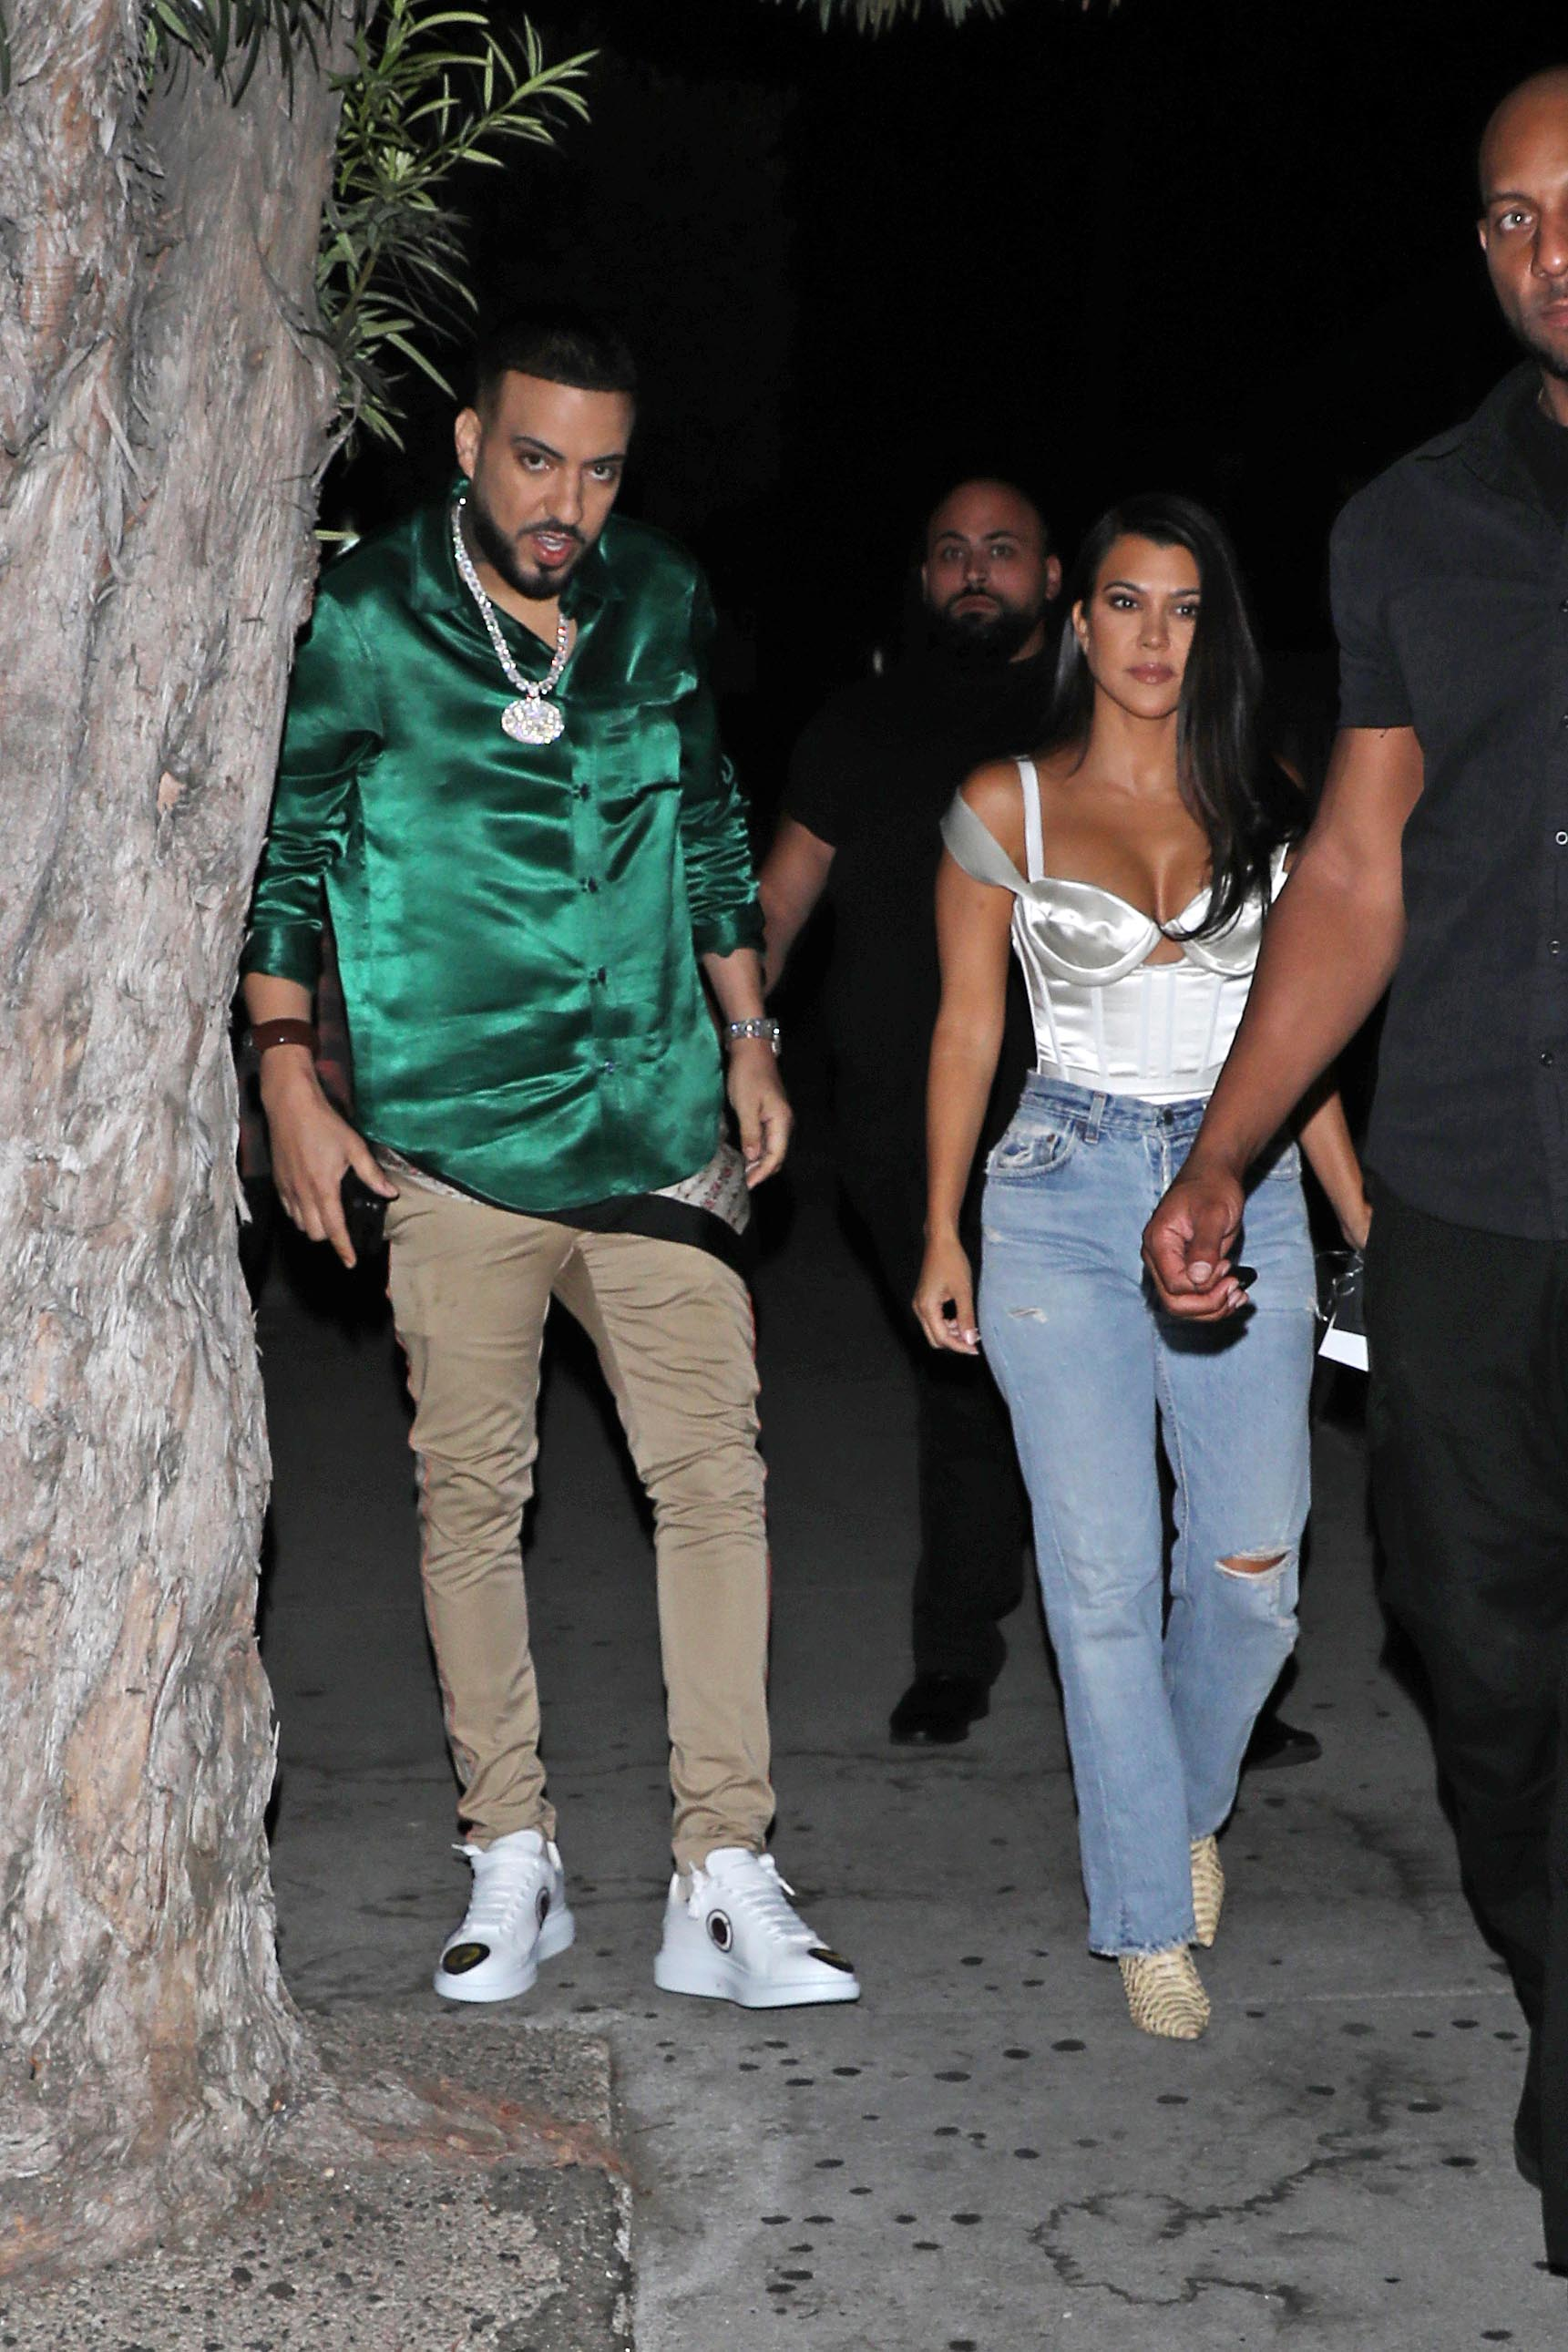 Kourtney Kardashian and French Montana